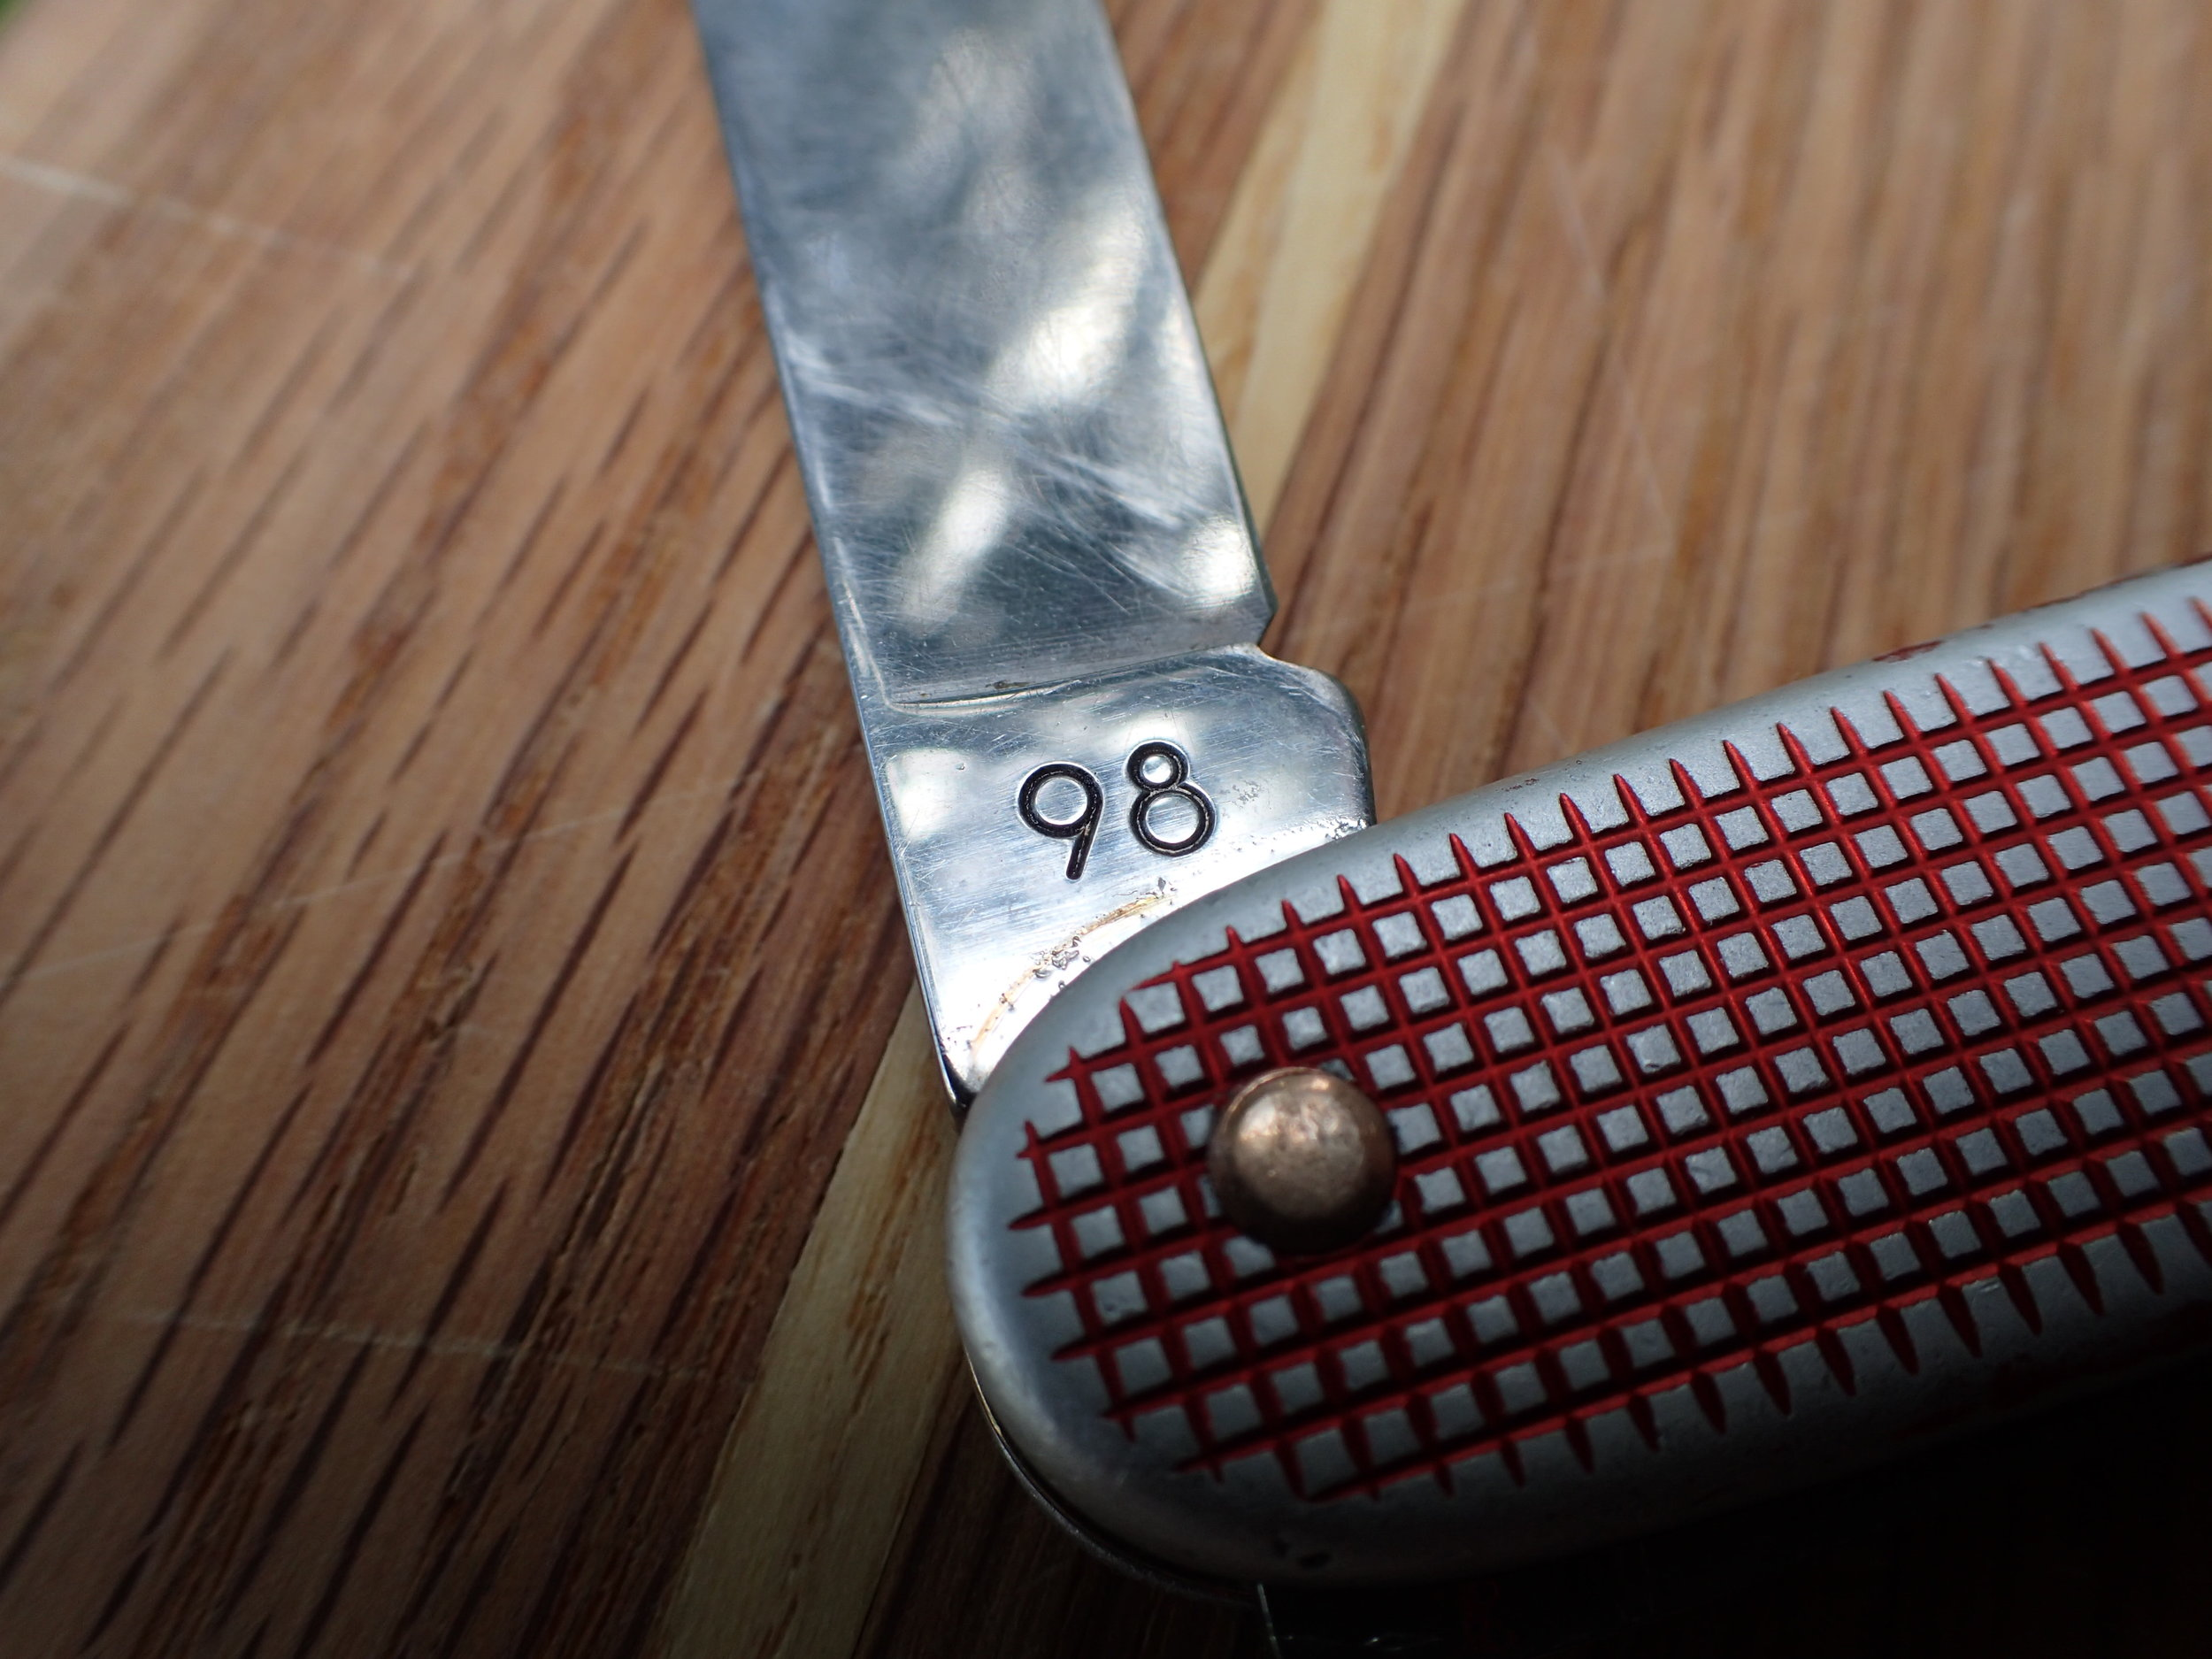 It's no problem dating this SAK; the Victorinox factory has done it for us.